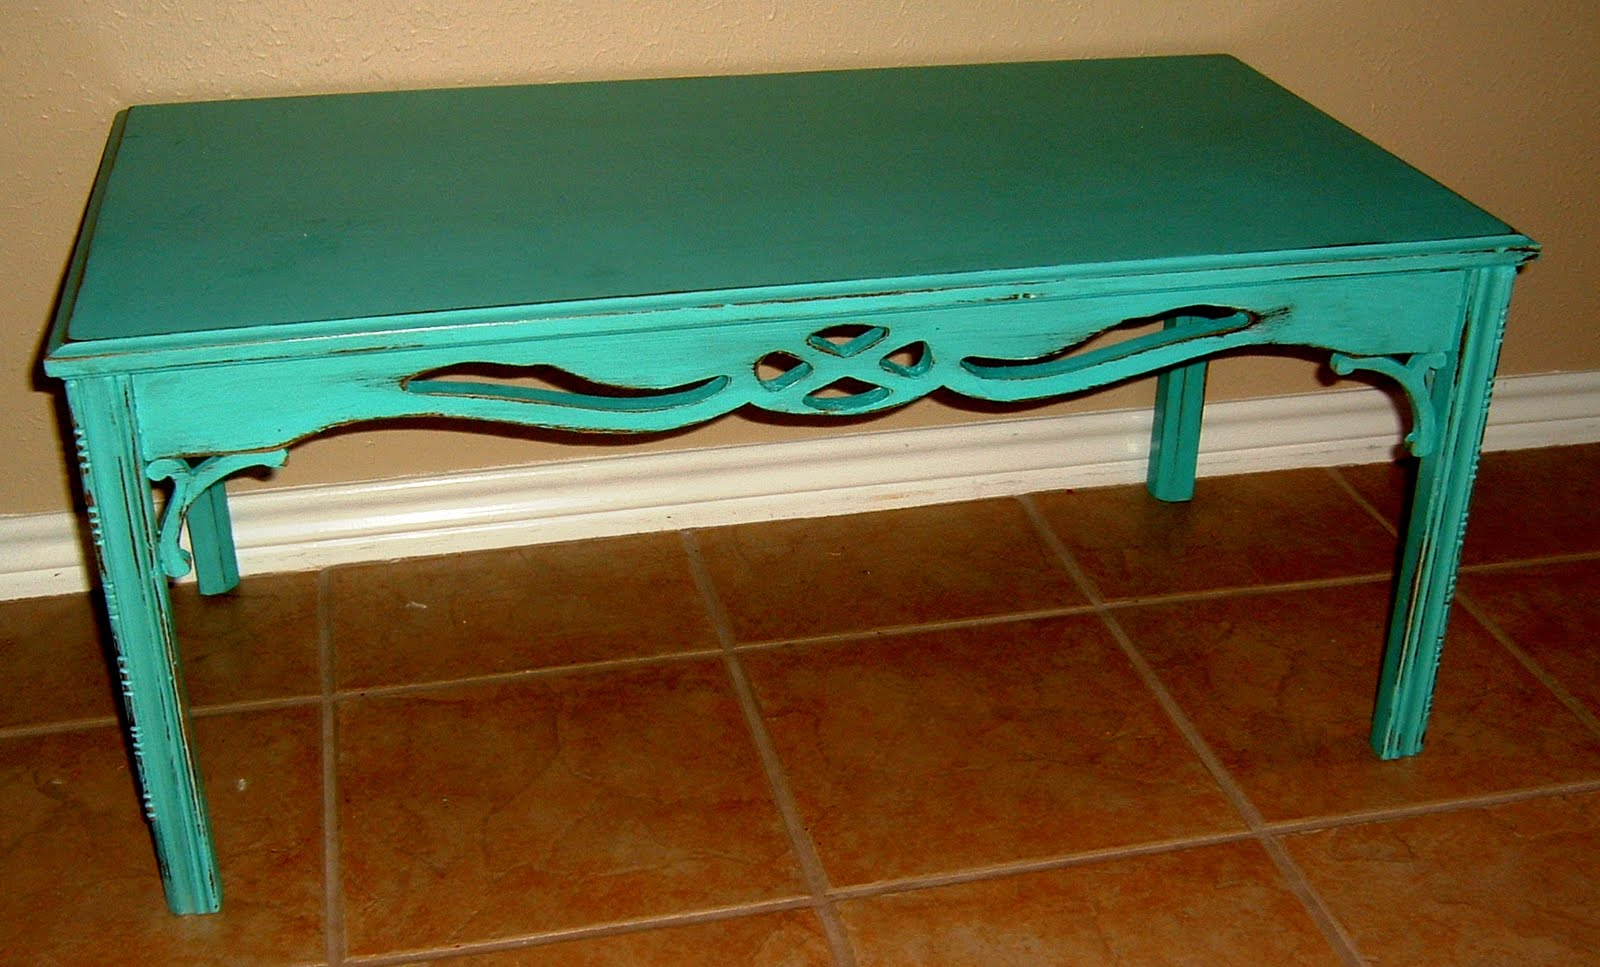 Antique Turquoise Coffee Table Facelift Furniture